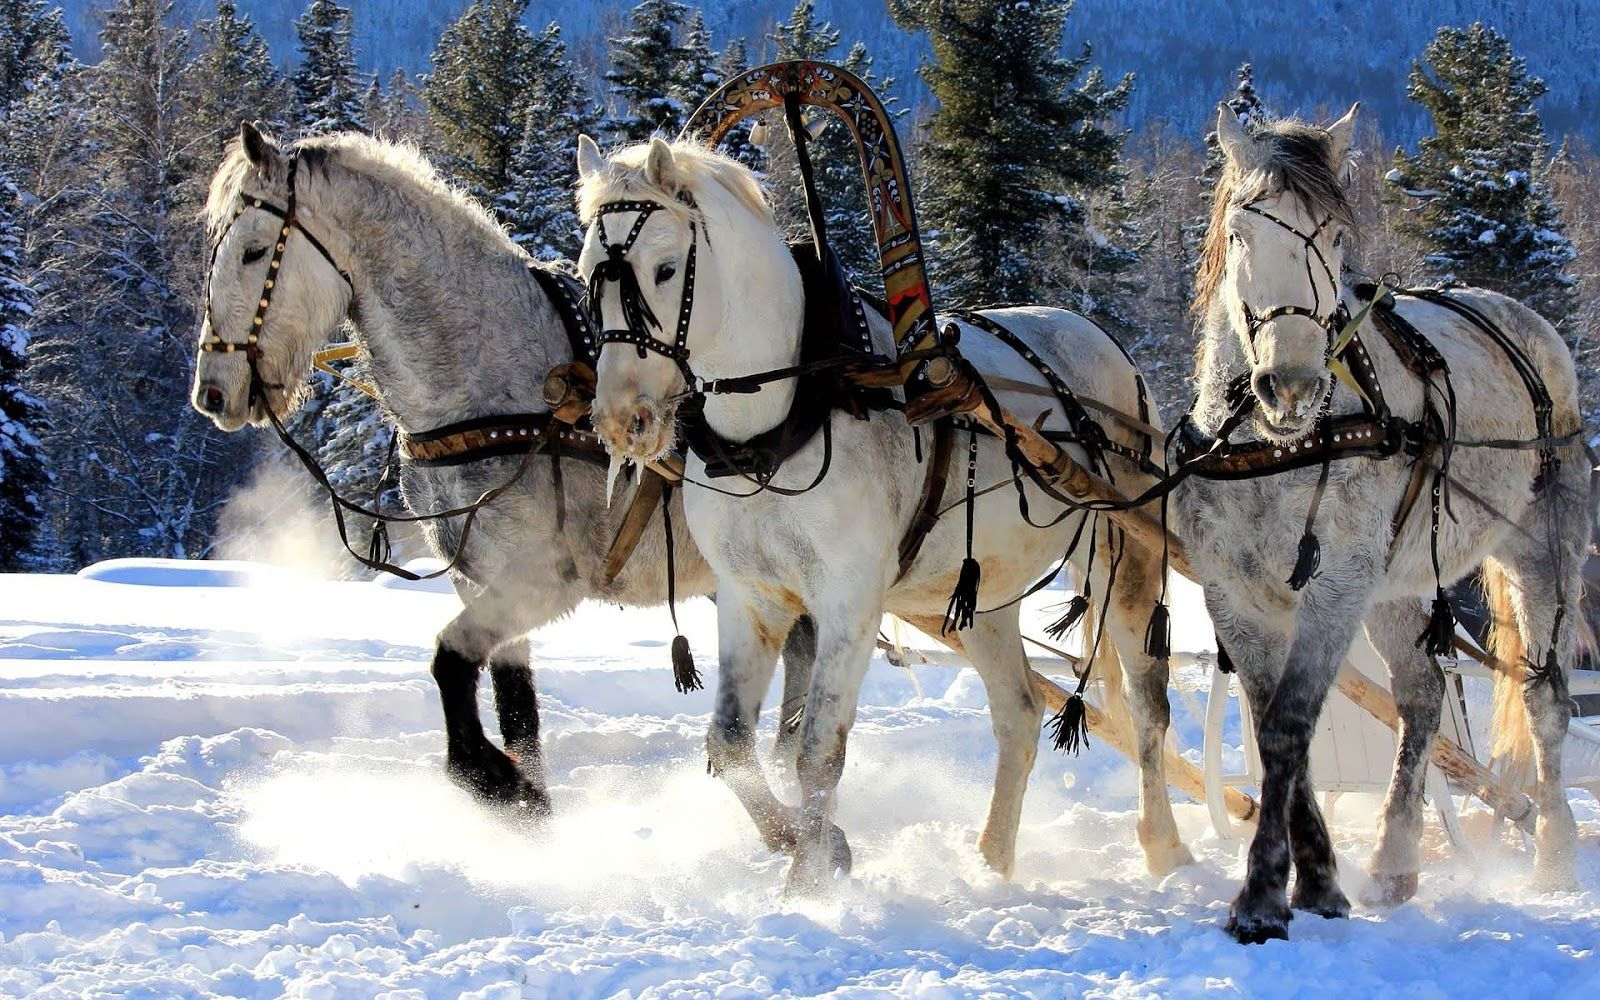 Top Wallpaper Horse Winter - 2af93b4de6e4ad1959e5ed5e955d5e15  Graphic_394274.jpg